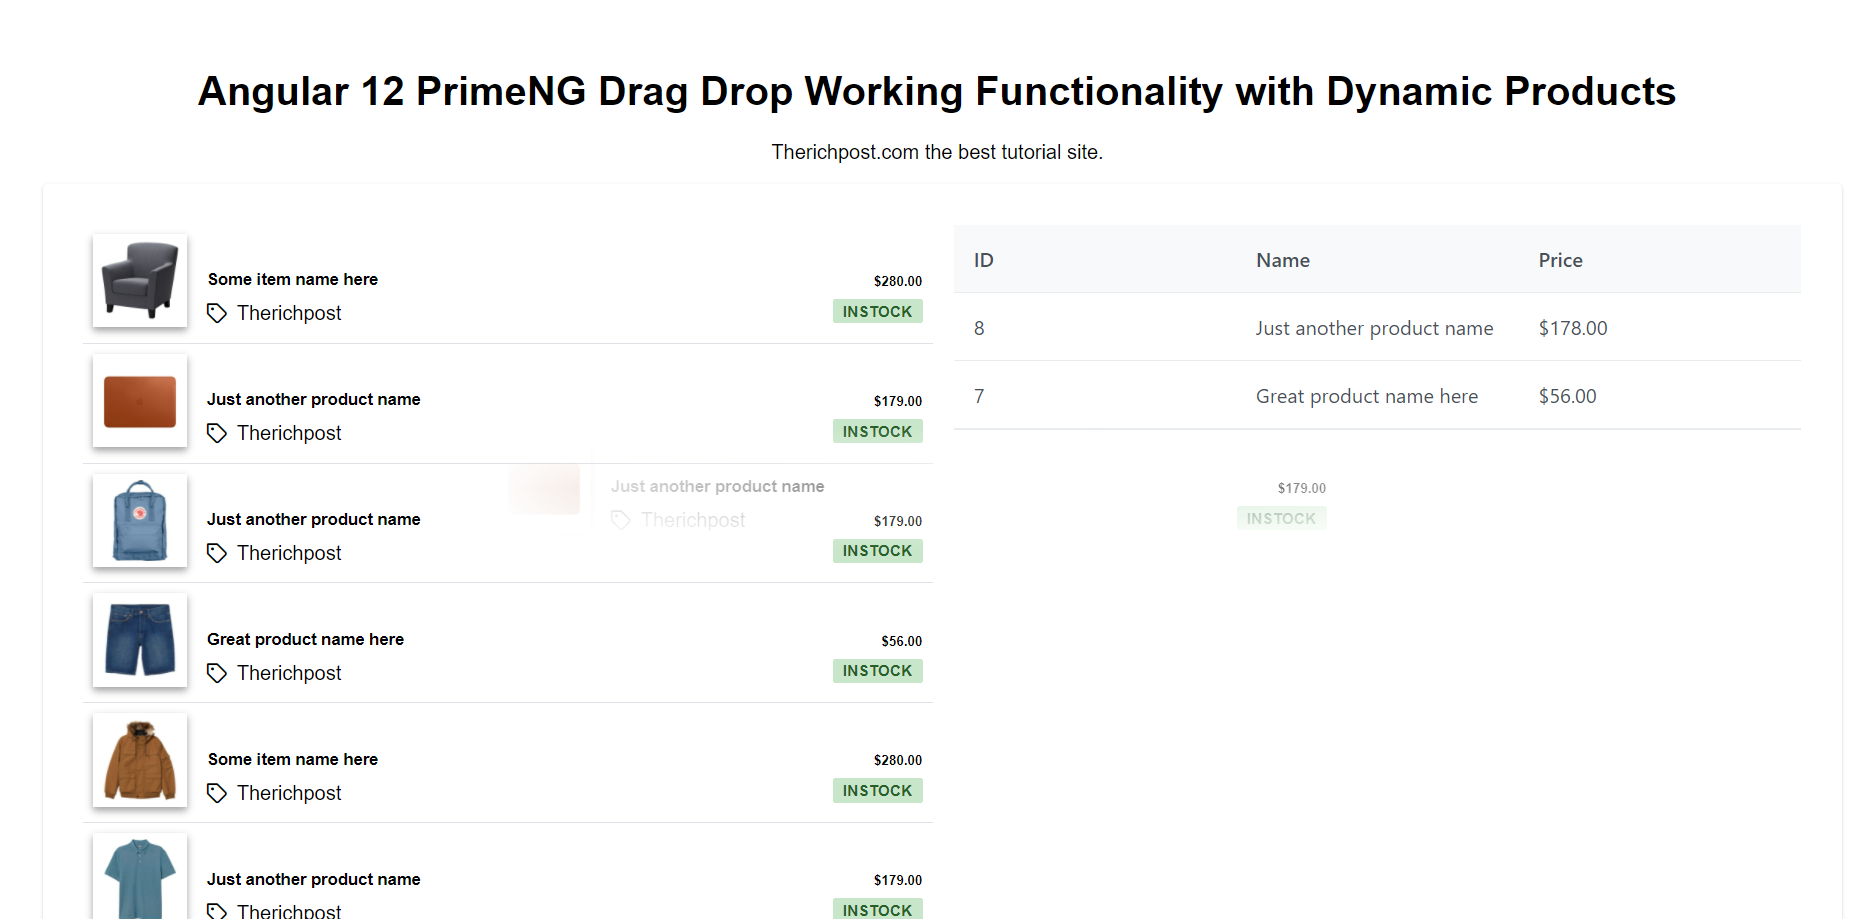 Angular 12 PrimeNG Drag Drop Working Functionality with Dynamic Products